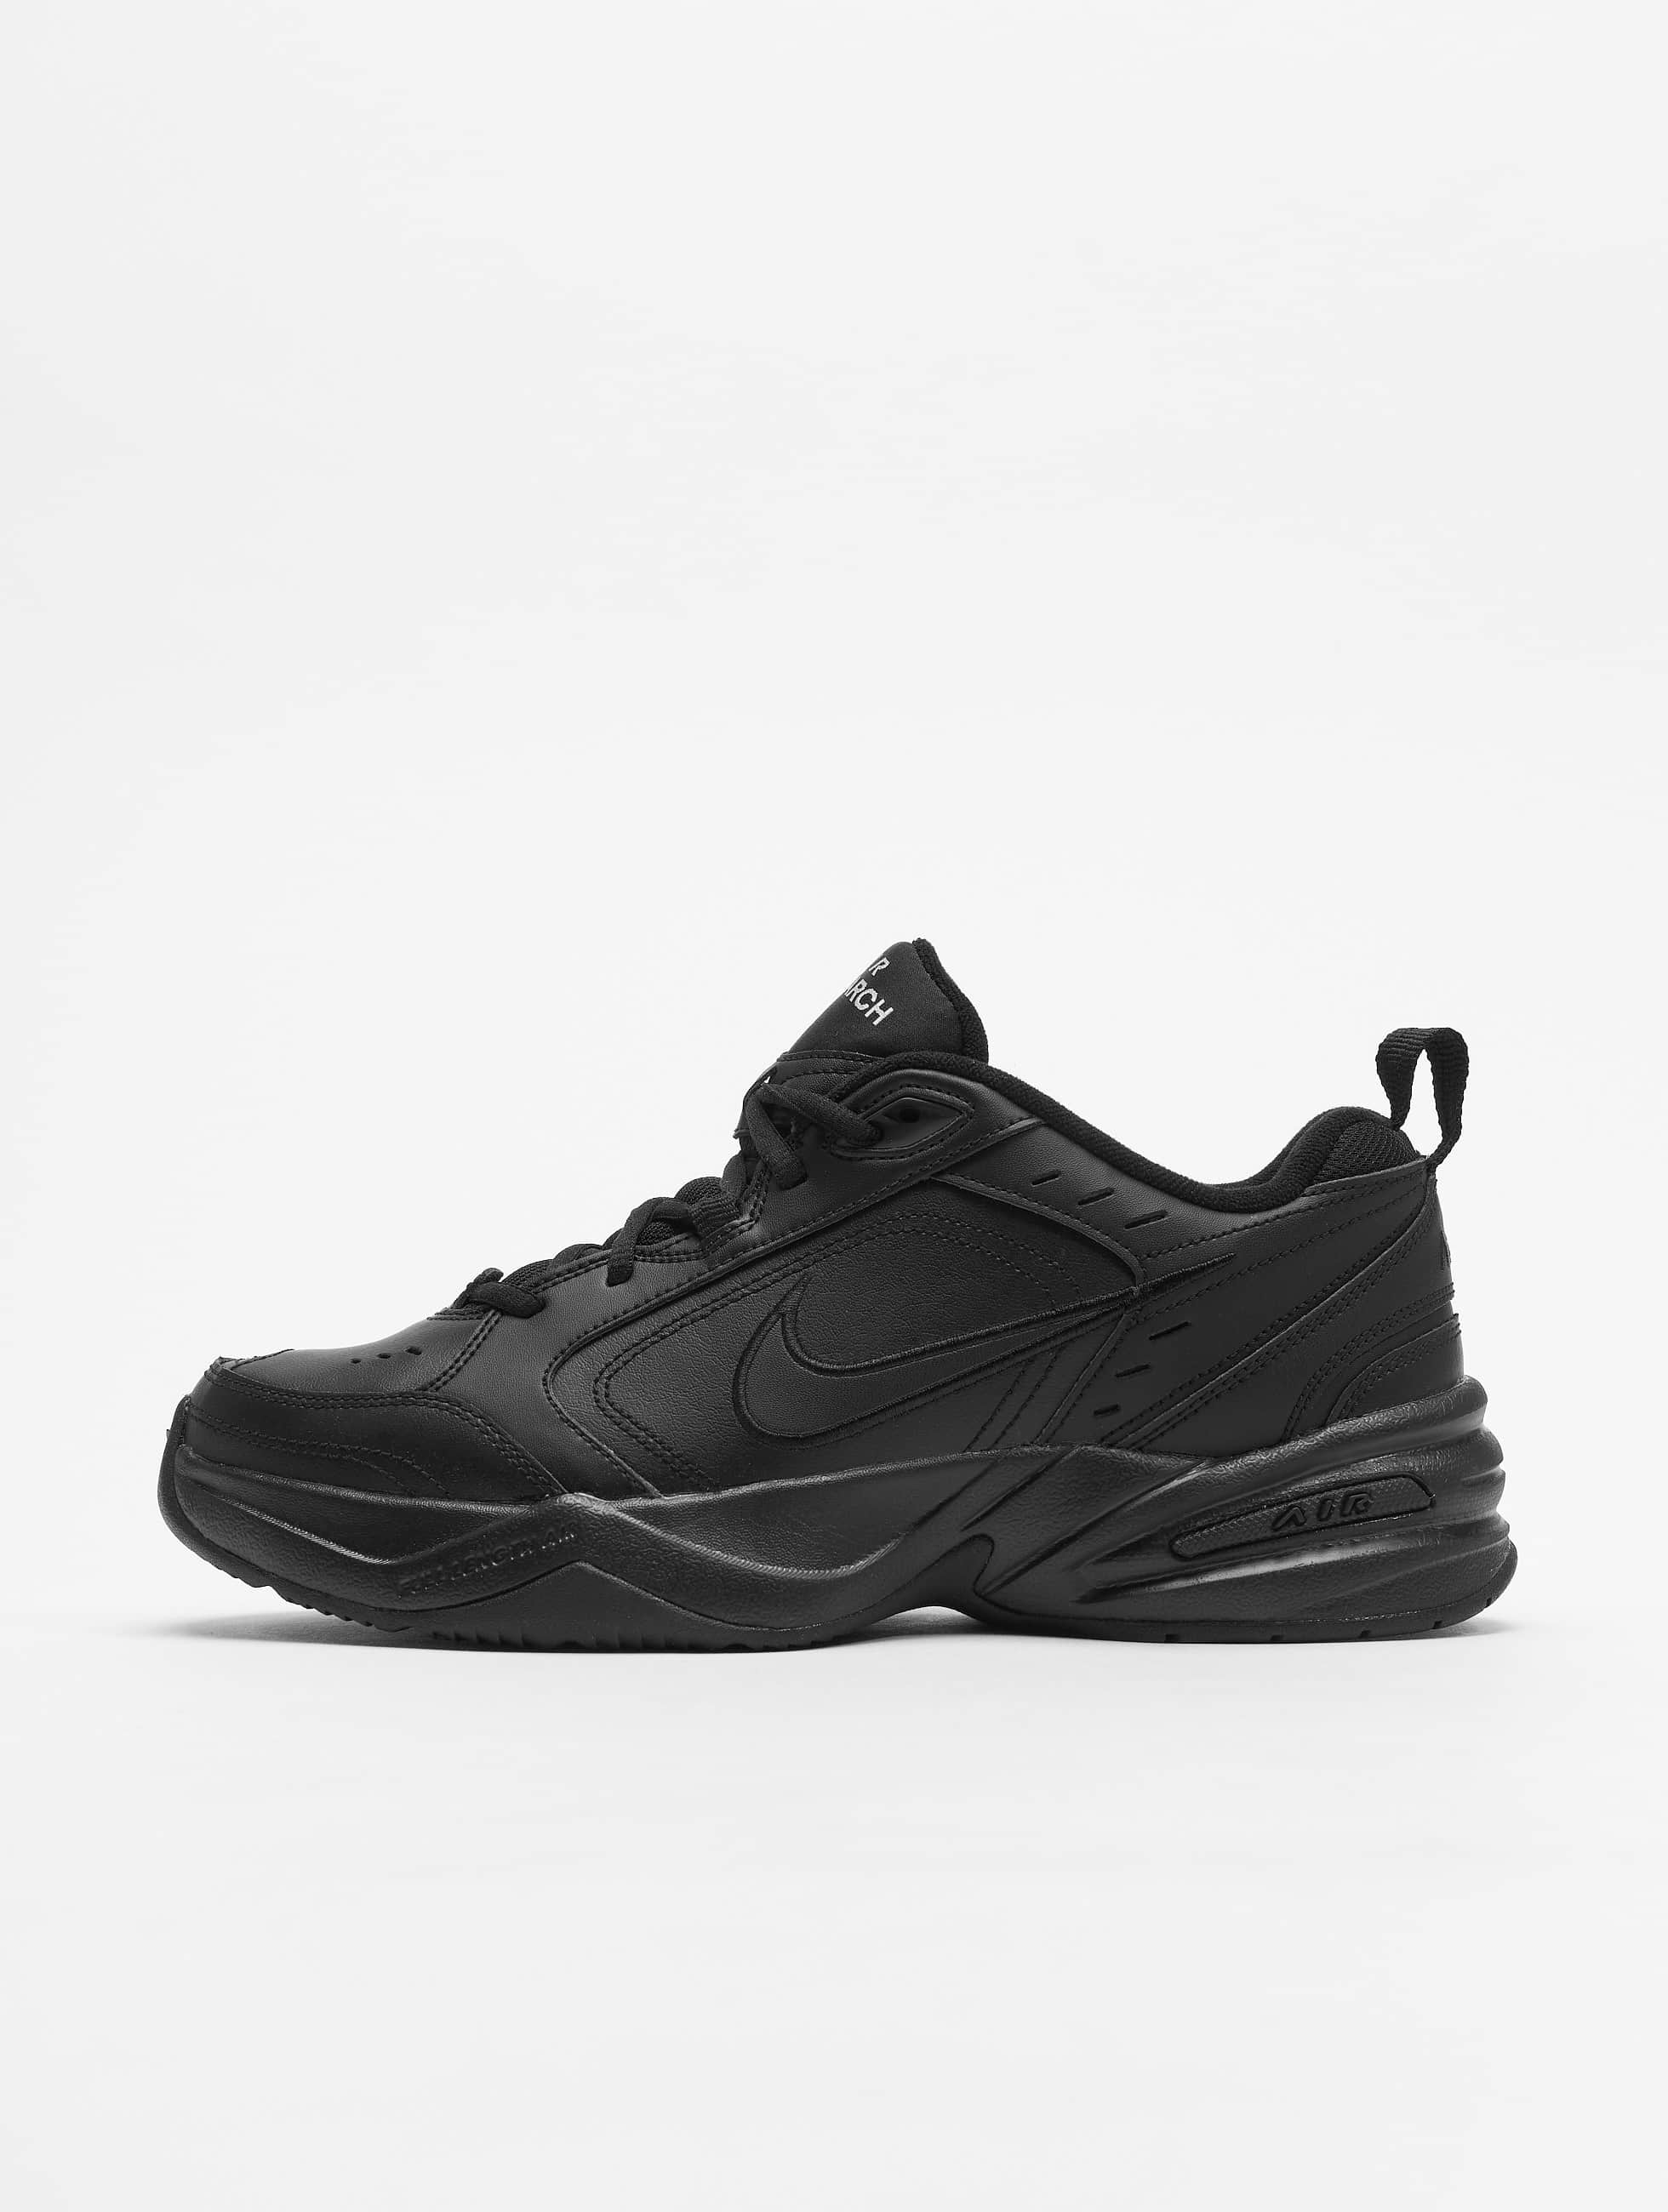 basket taille 43 homme nike air performance